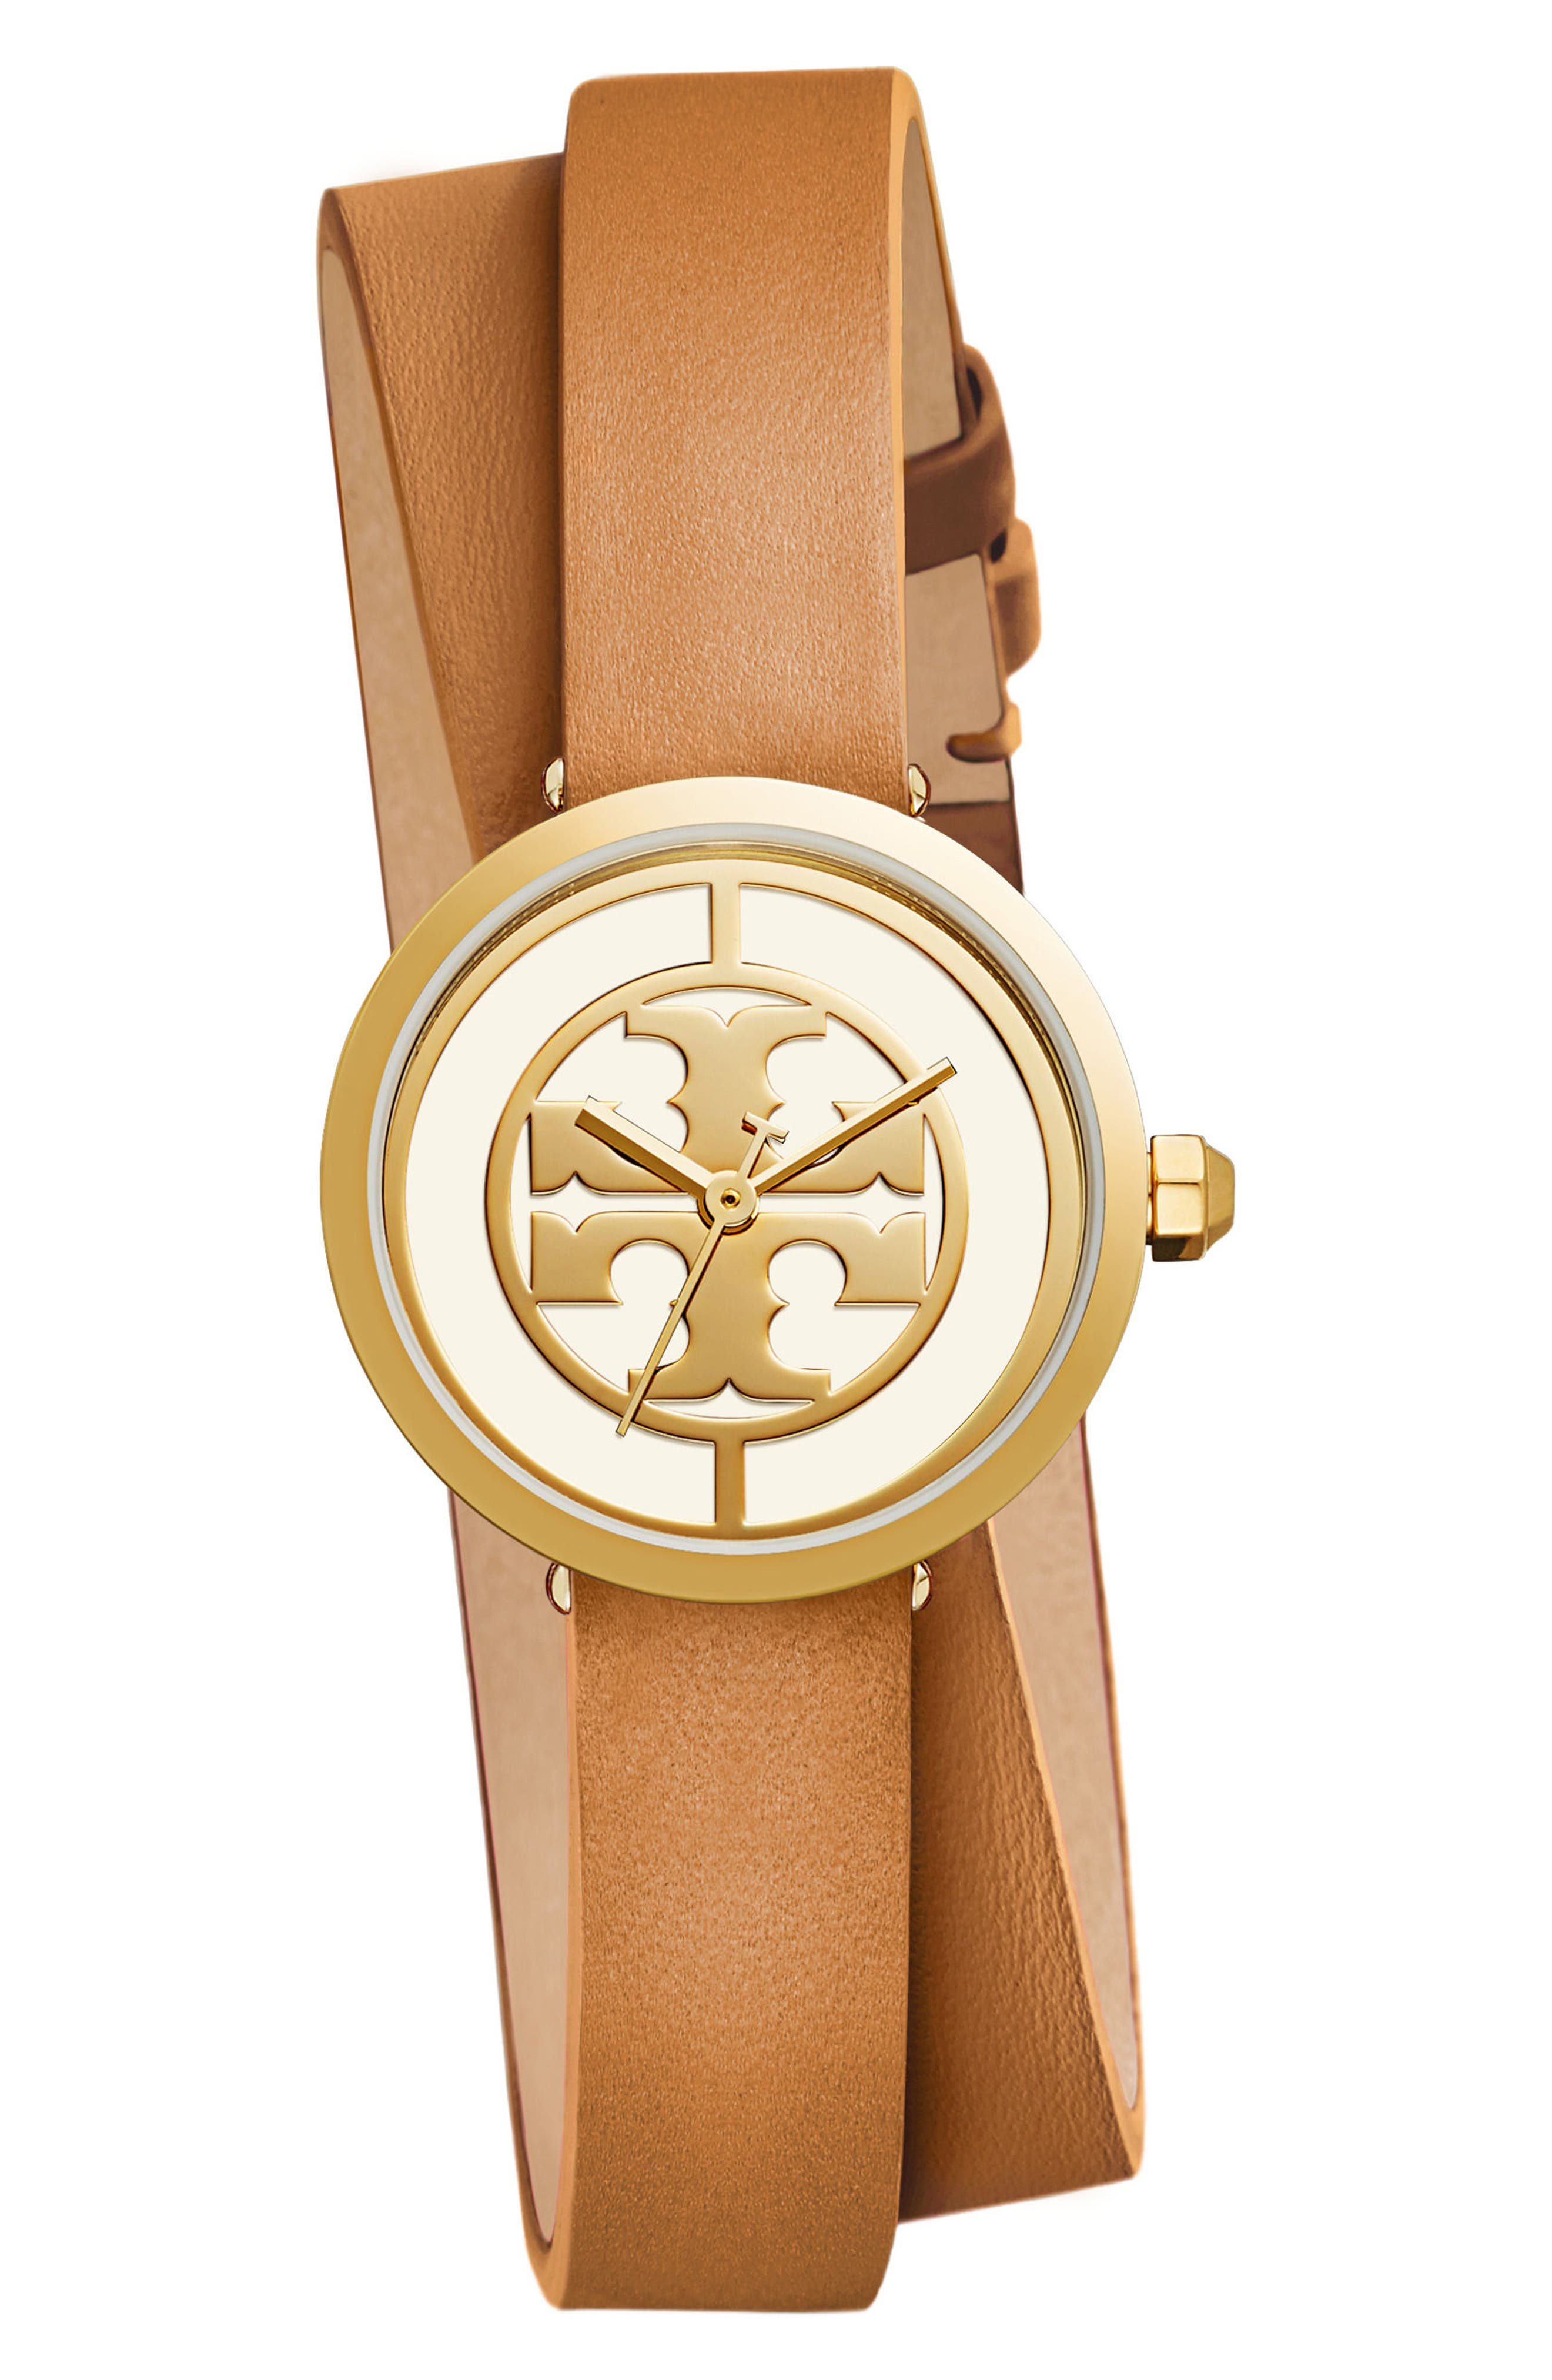 TORY BURCH Reva Logo Dial Double Wrap Leather Strap Watch, 28mm, Main, color, LUGGAGE/ IVORY/ GOLD